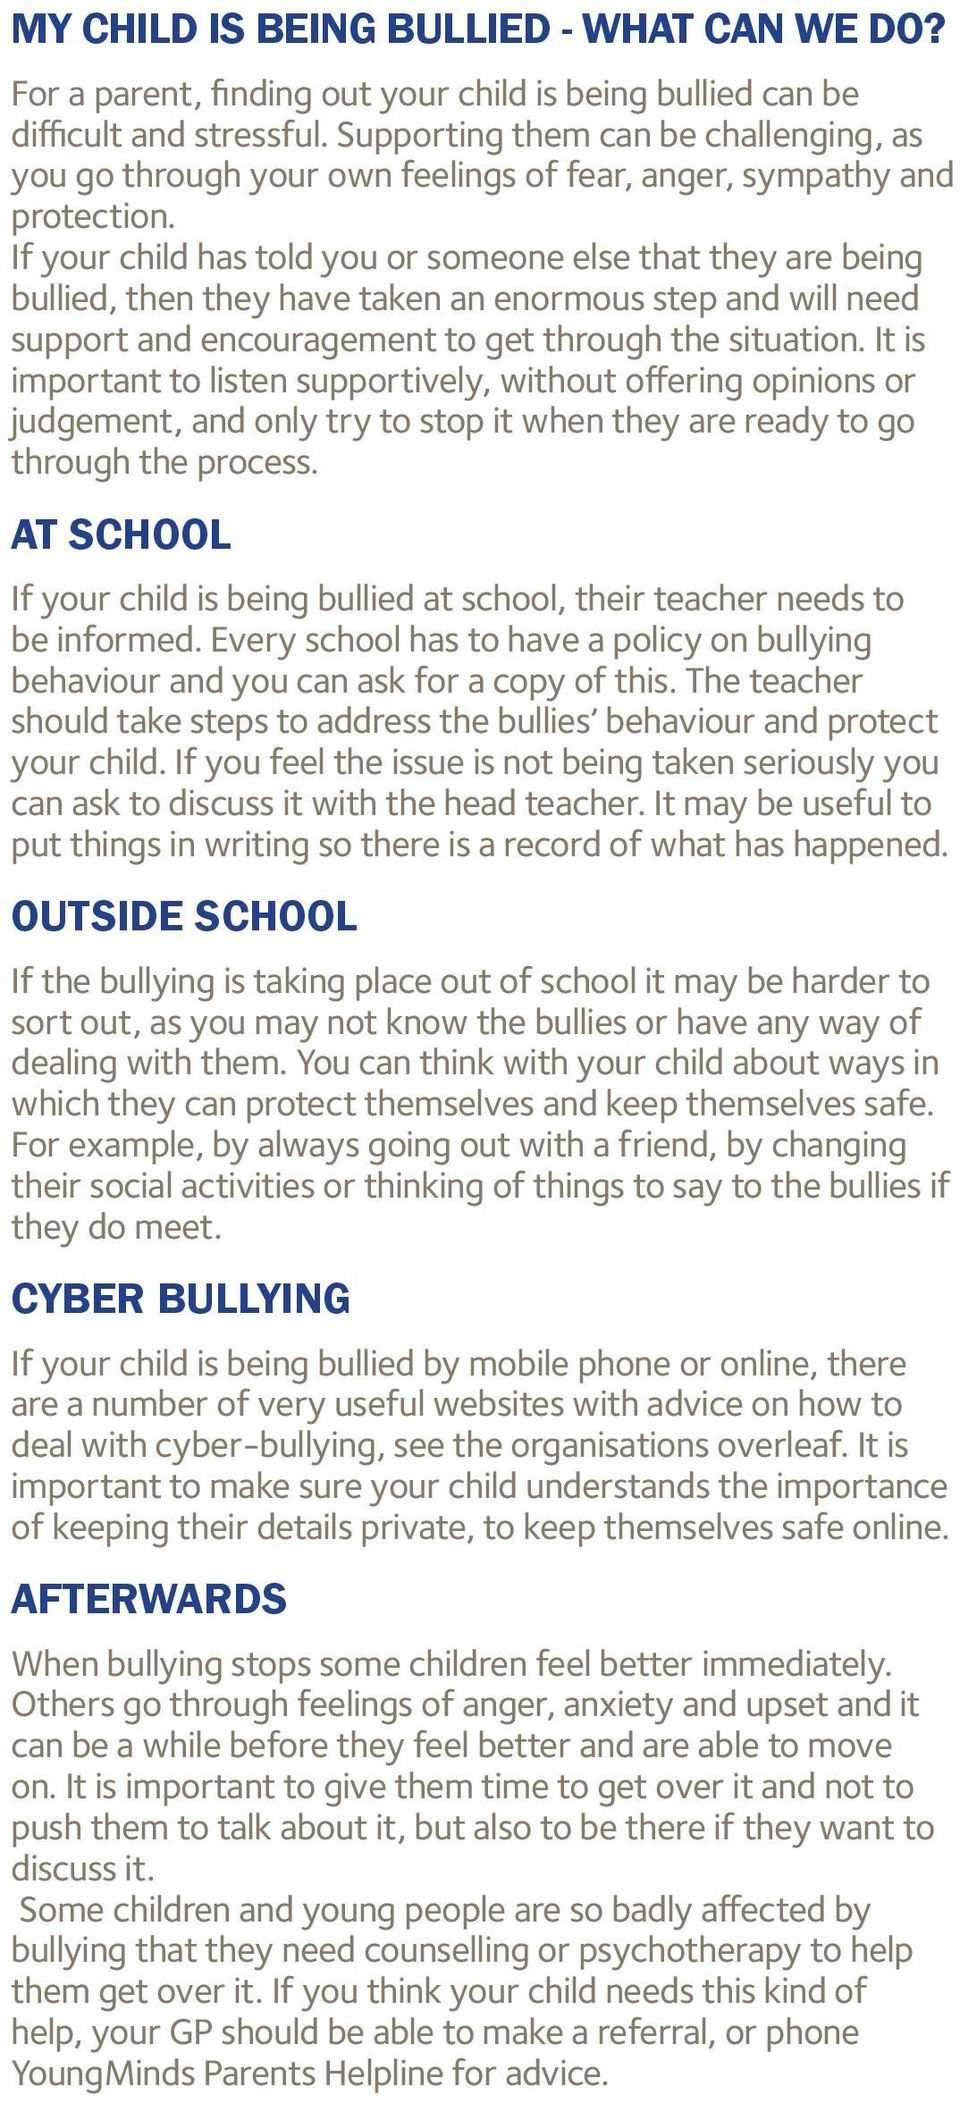 If your child has told you or someone else that they are being bullied, then they have taken an enormous step and will need support and encouragement to get through the situation.